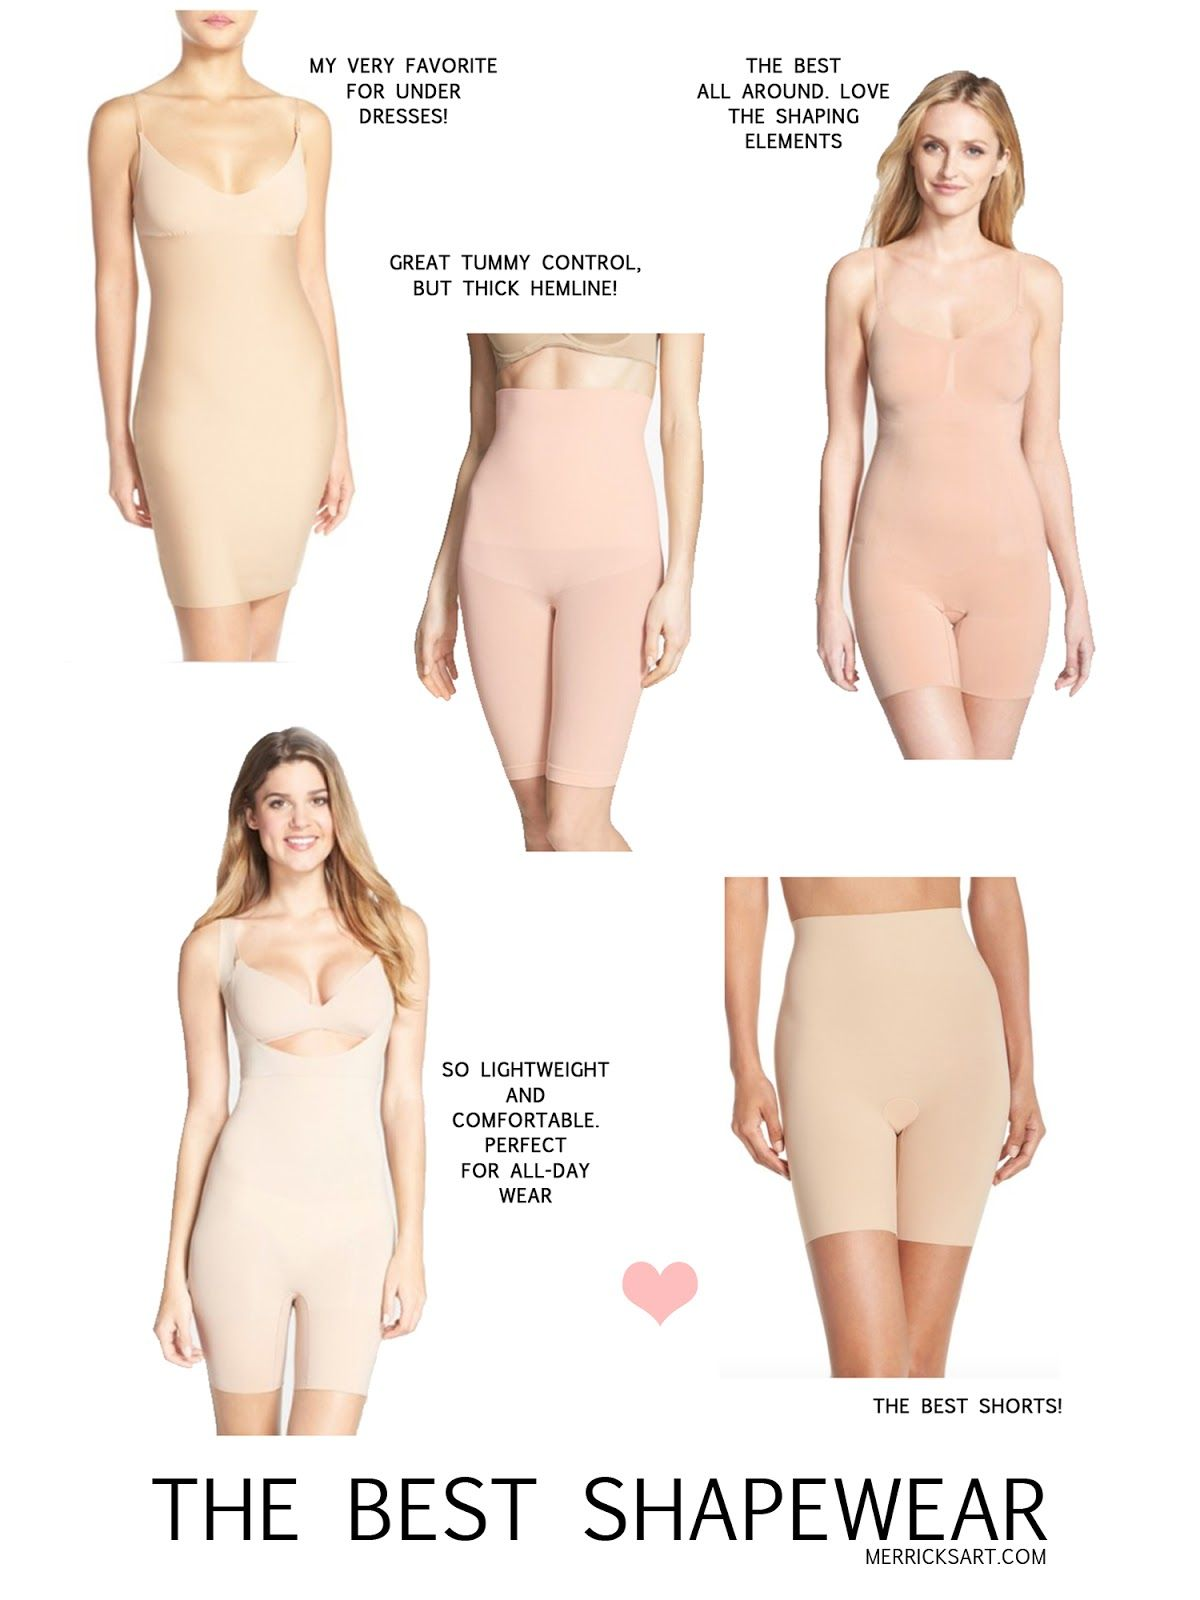 b6ecae9bbe8 Every woman should have one piece of shapewear in her closet! Check out  this review of different styles from  nordstrom on merricksart.com.